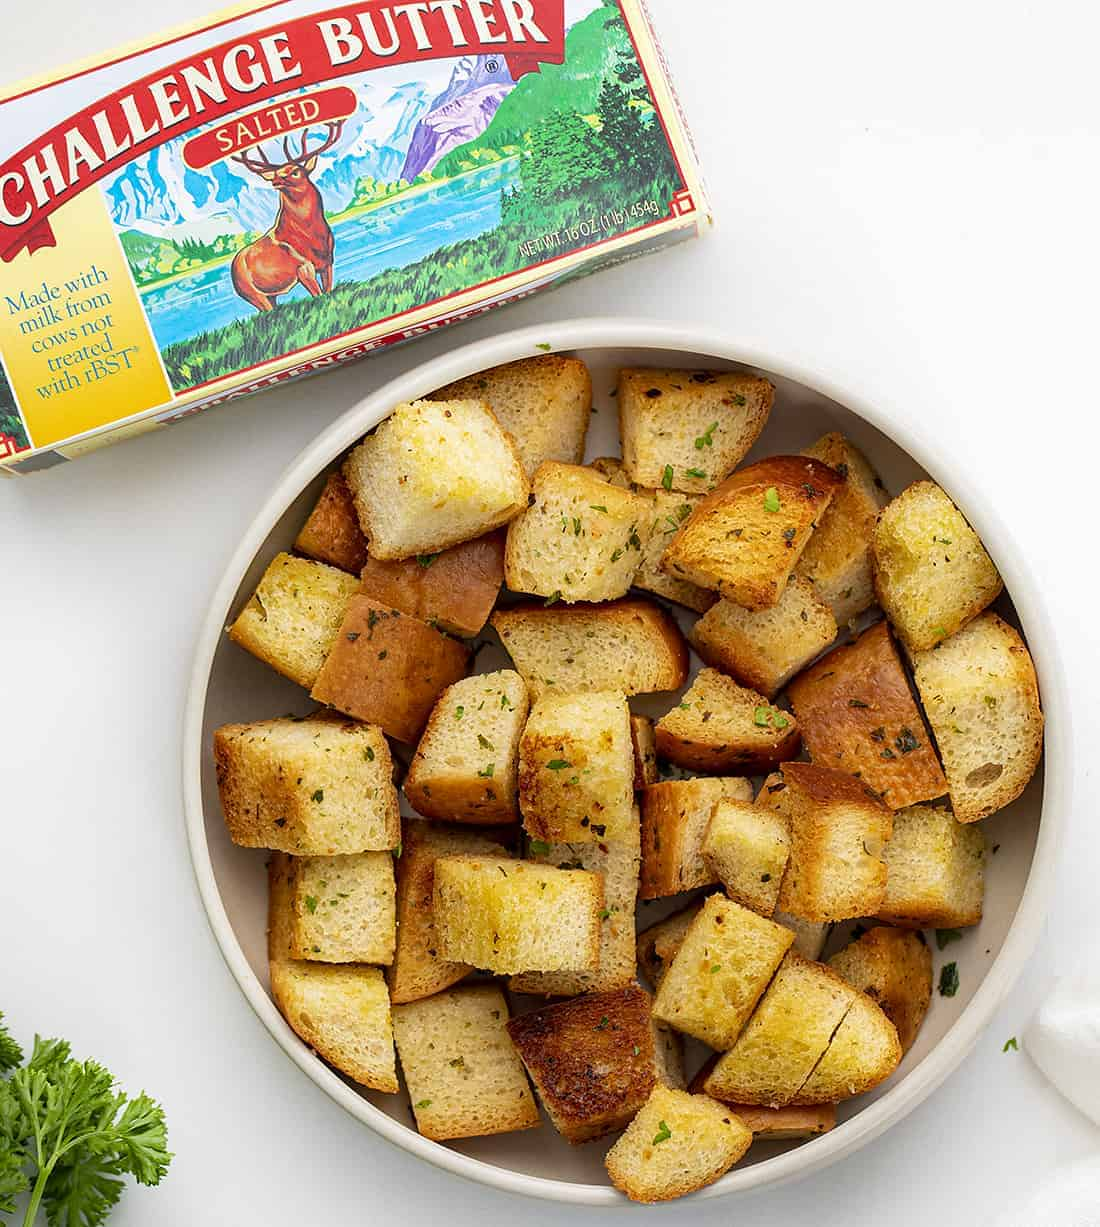 Bowl of Croutons with Challenge Butter